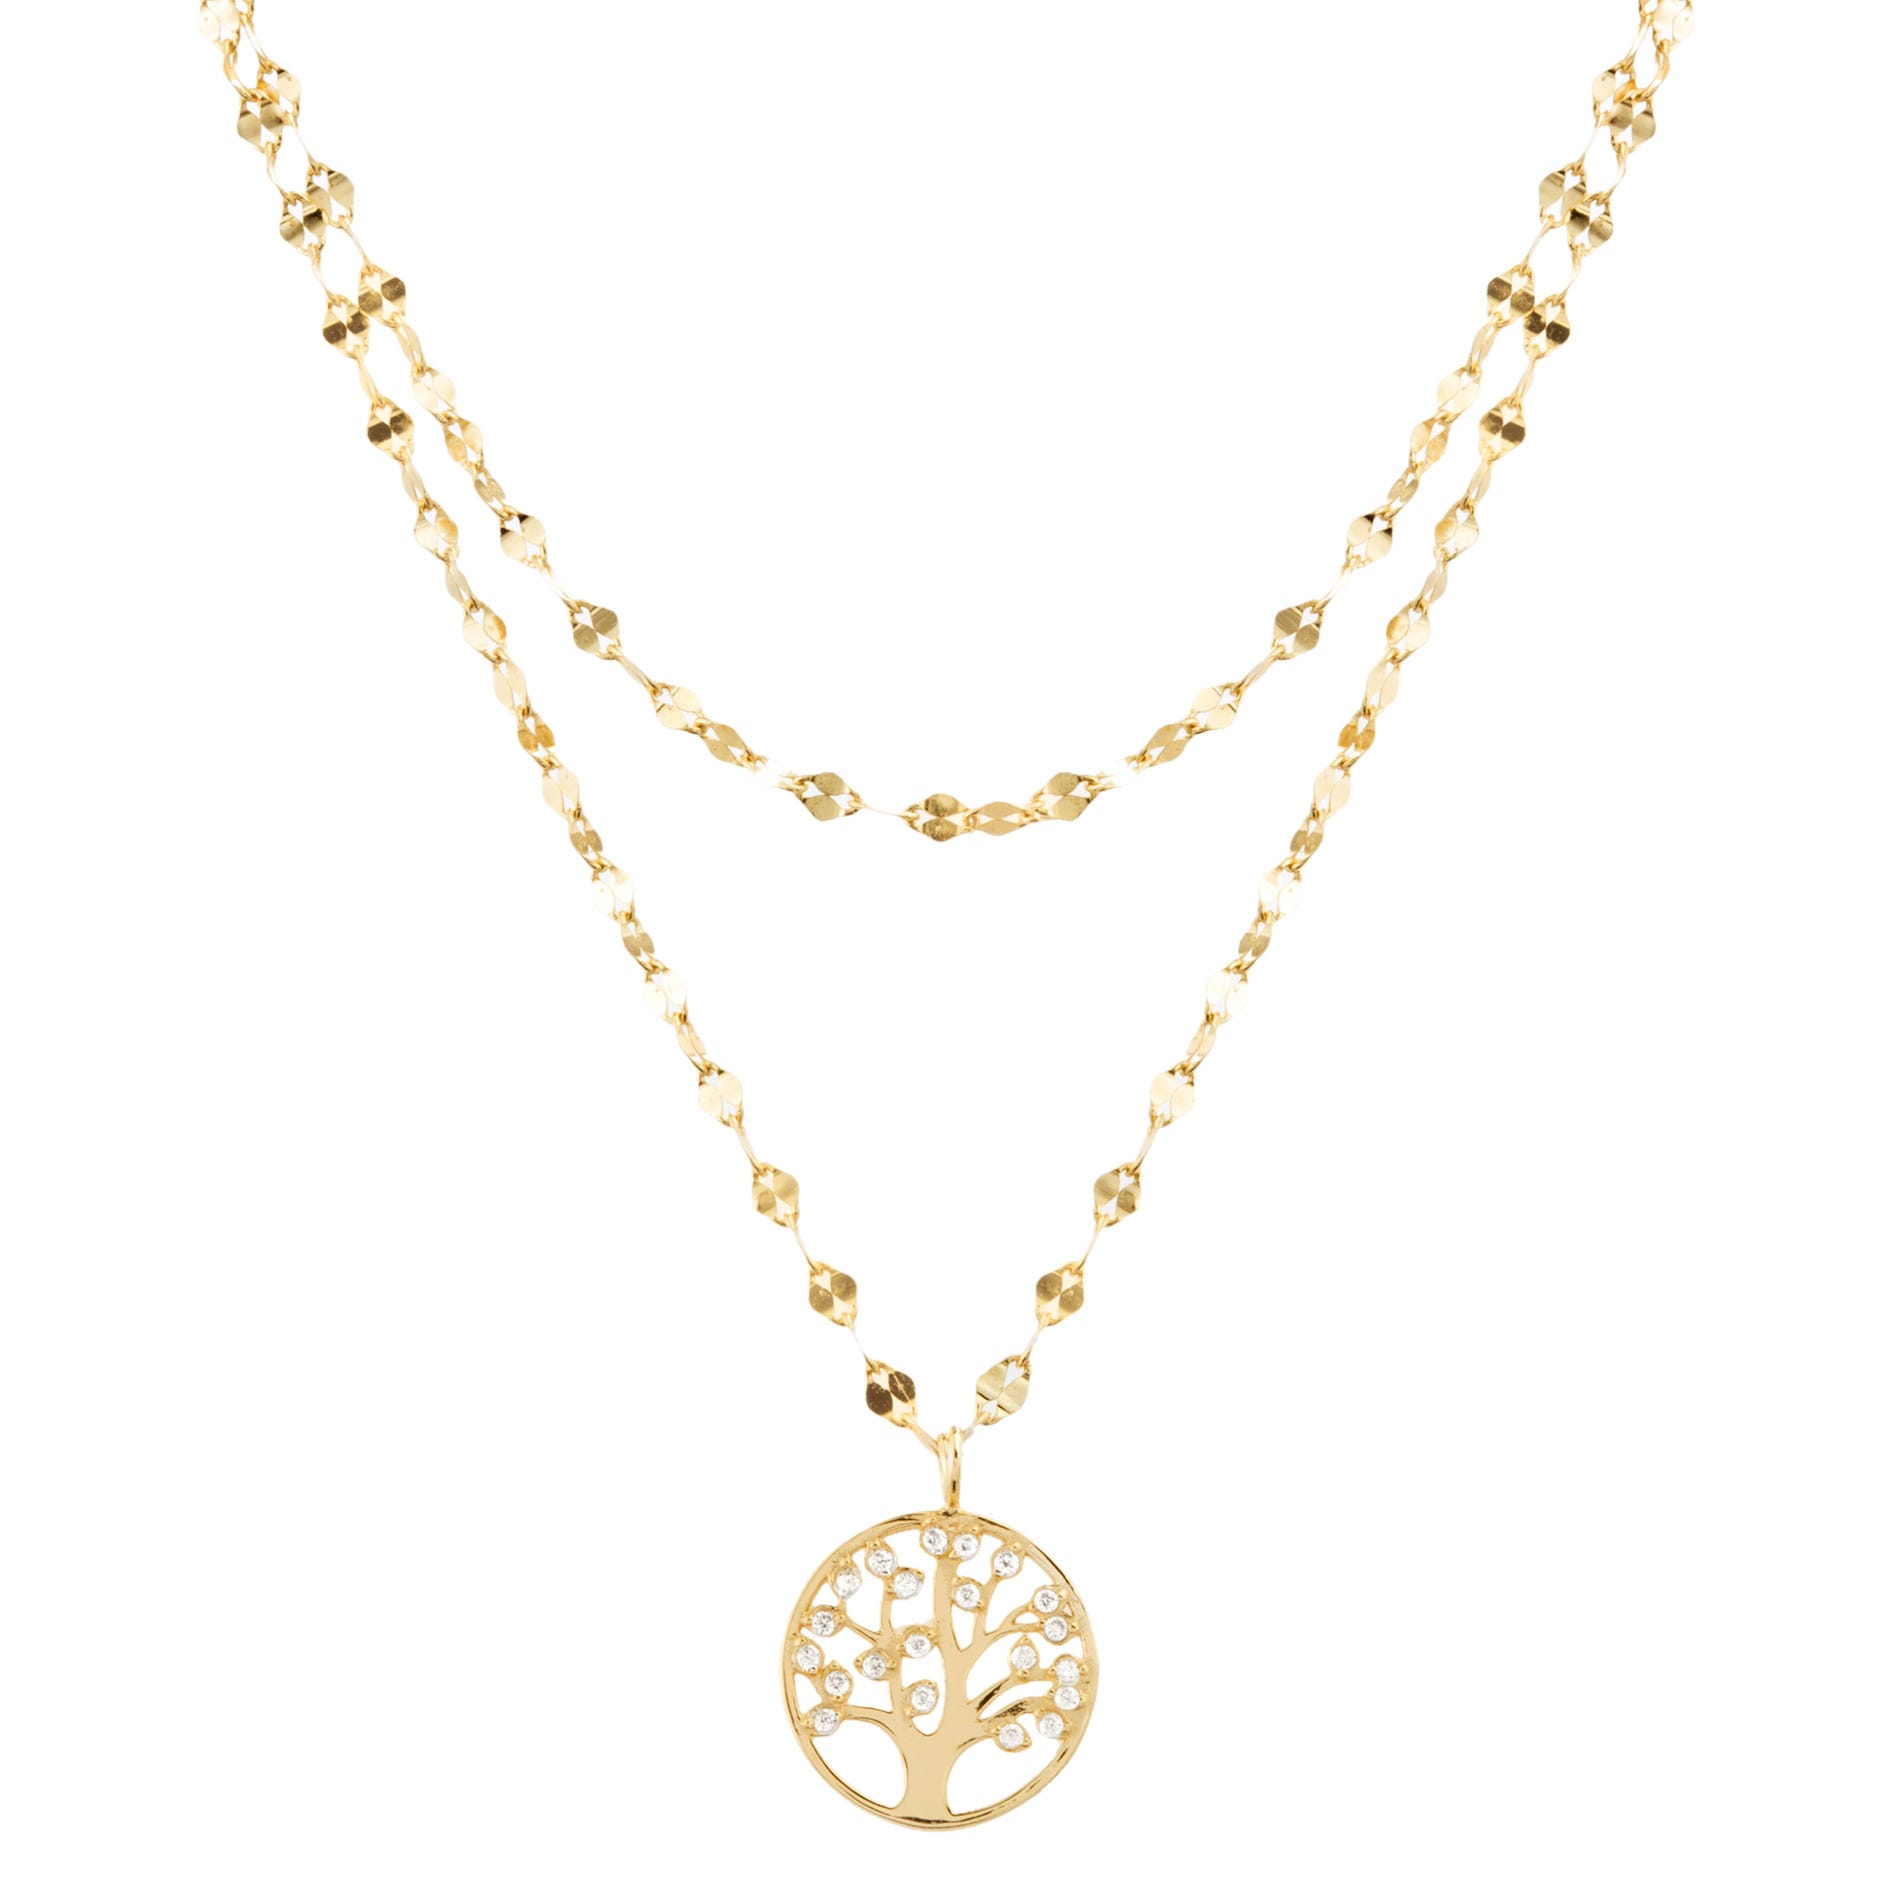 Tree of Life Choker Necklace in Yellow Gold Plated Sterling Silver